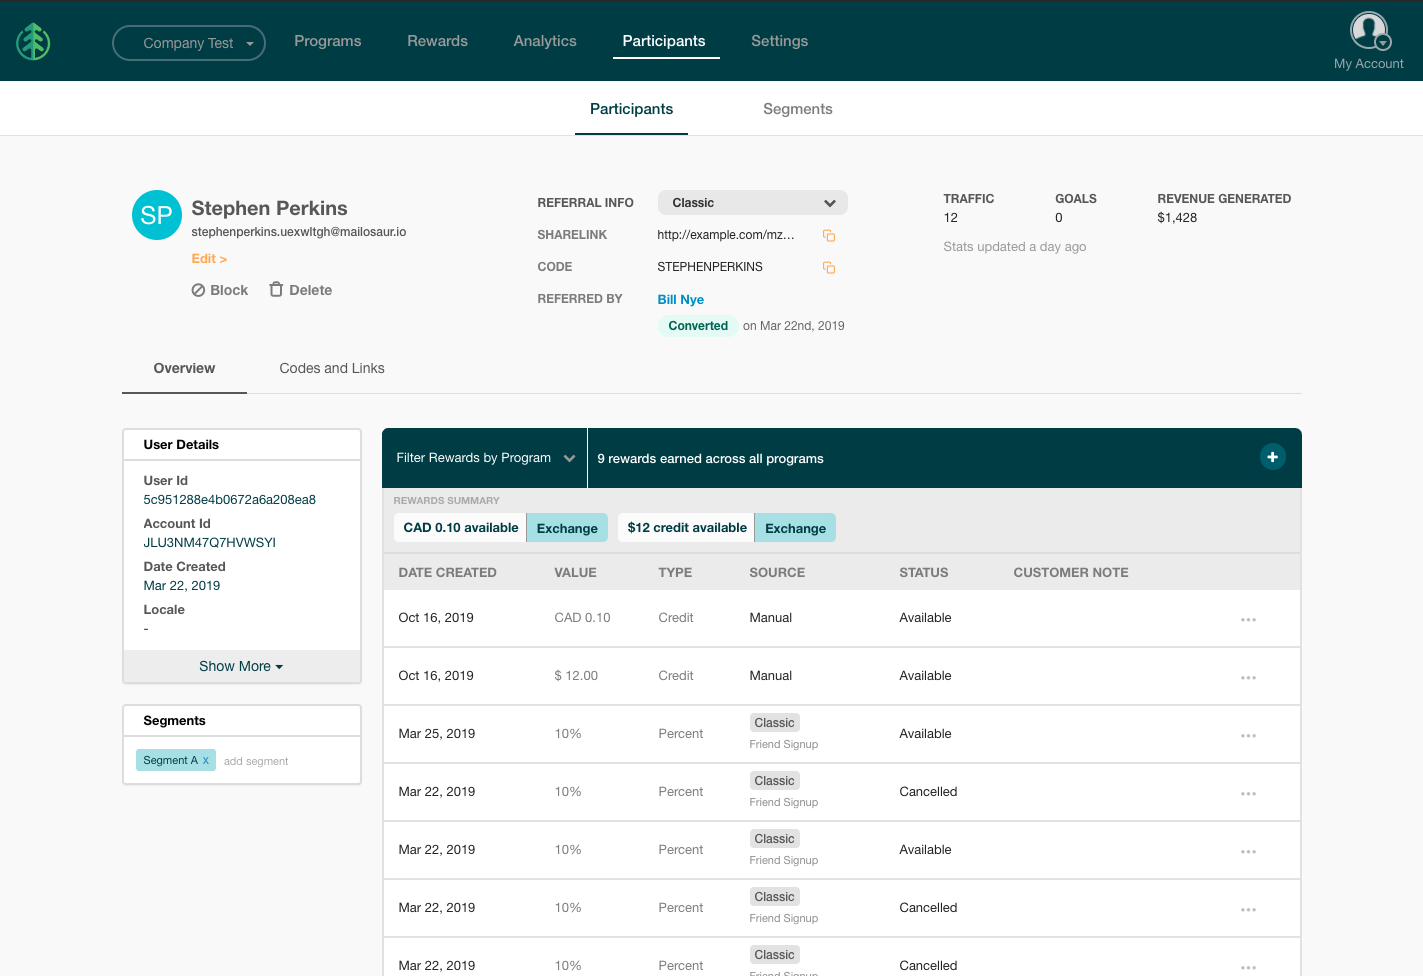 Manage advocate profiles, reward history, codes and links all in one place, and segment participants to provide targeted rewards.